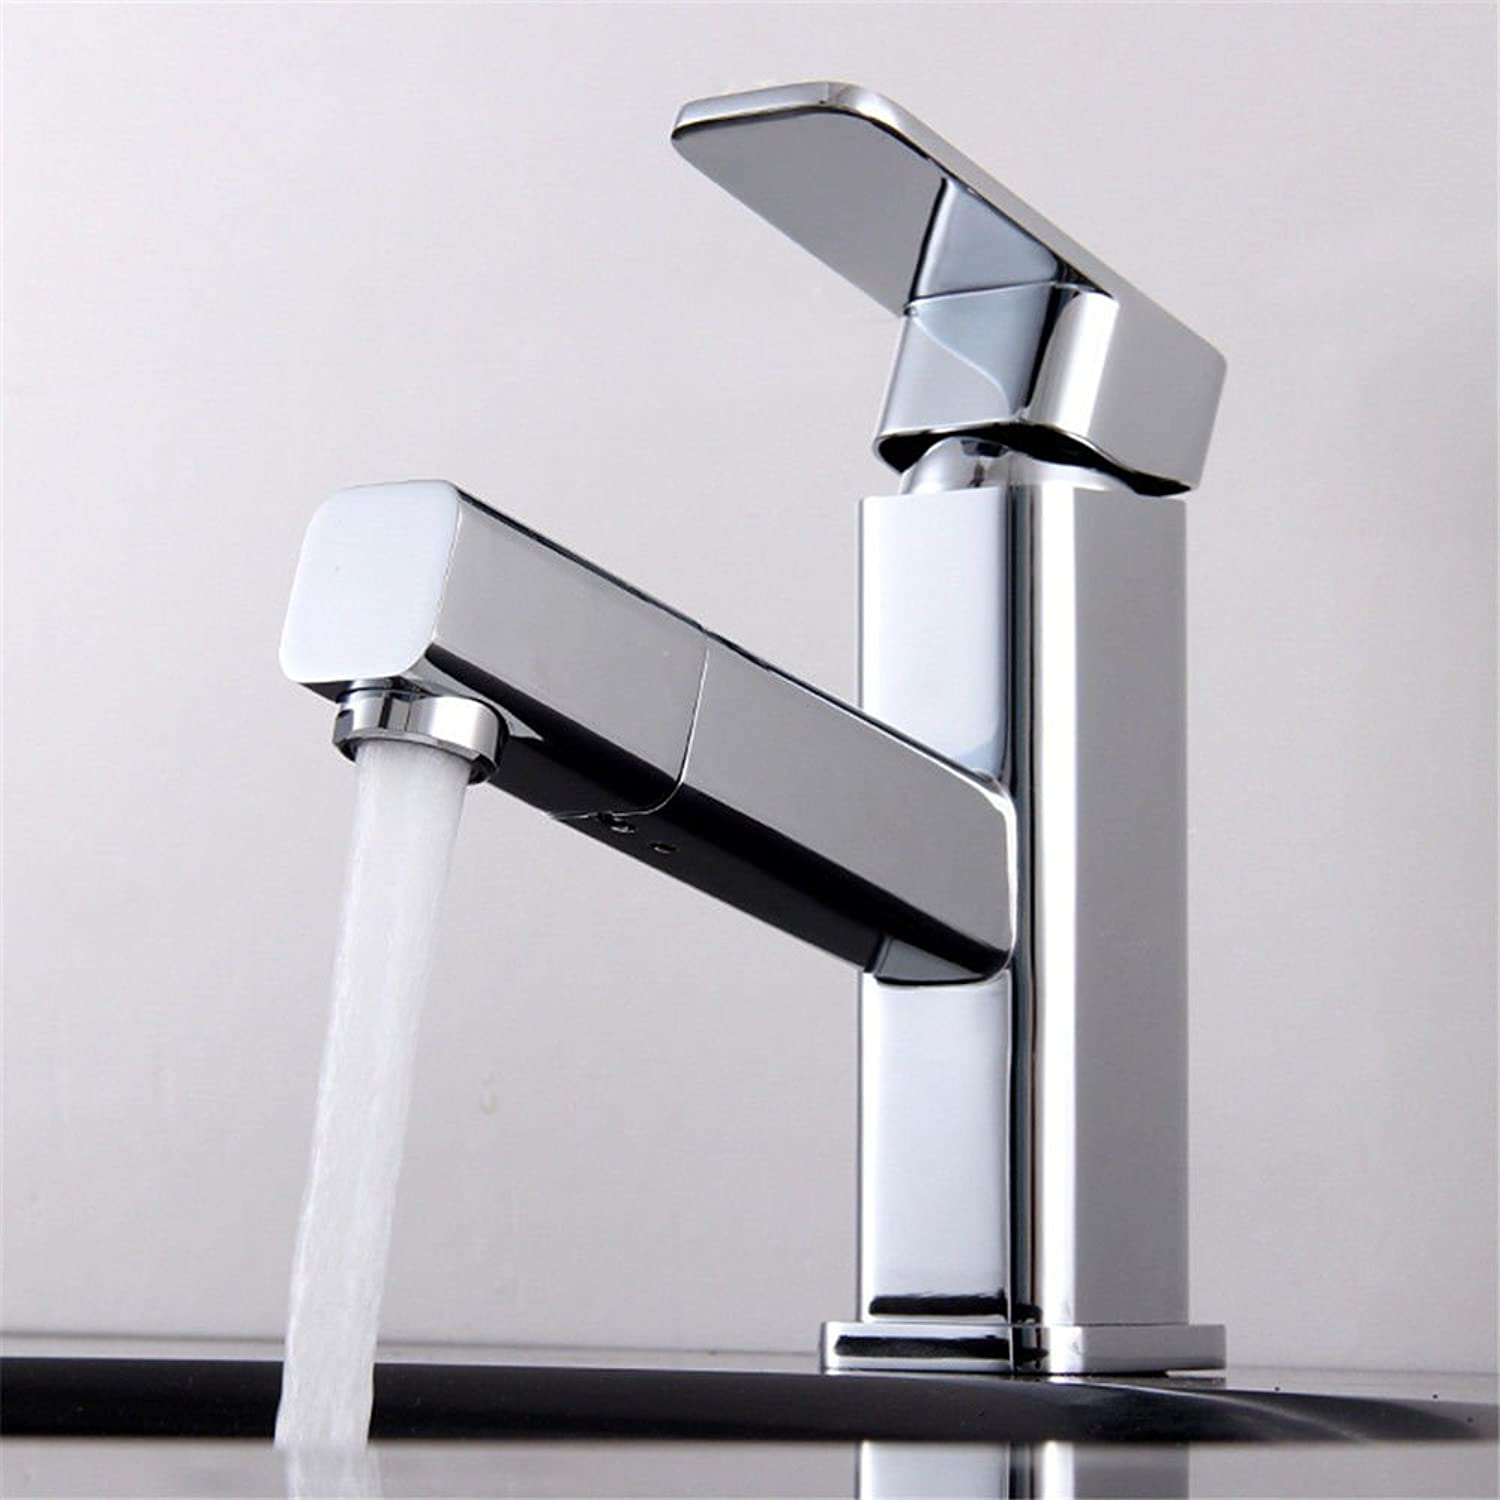 Lalaky Taps Faucet Kitchen Mixer Sink Waterfall Bathroom Mixer Basin Mixer Tap for Kitchen Bathroom and Washroom Copper Square Hot and Cold Water Pumping